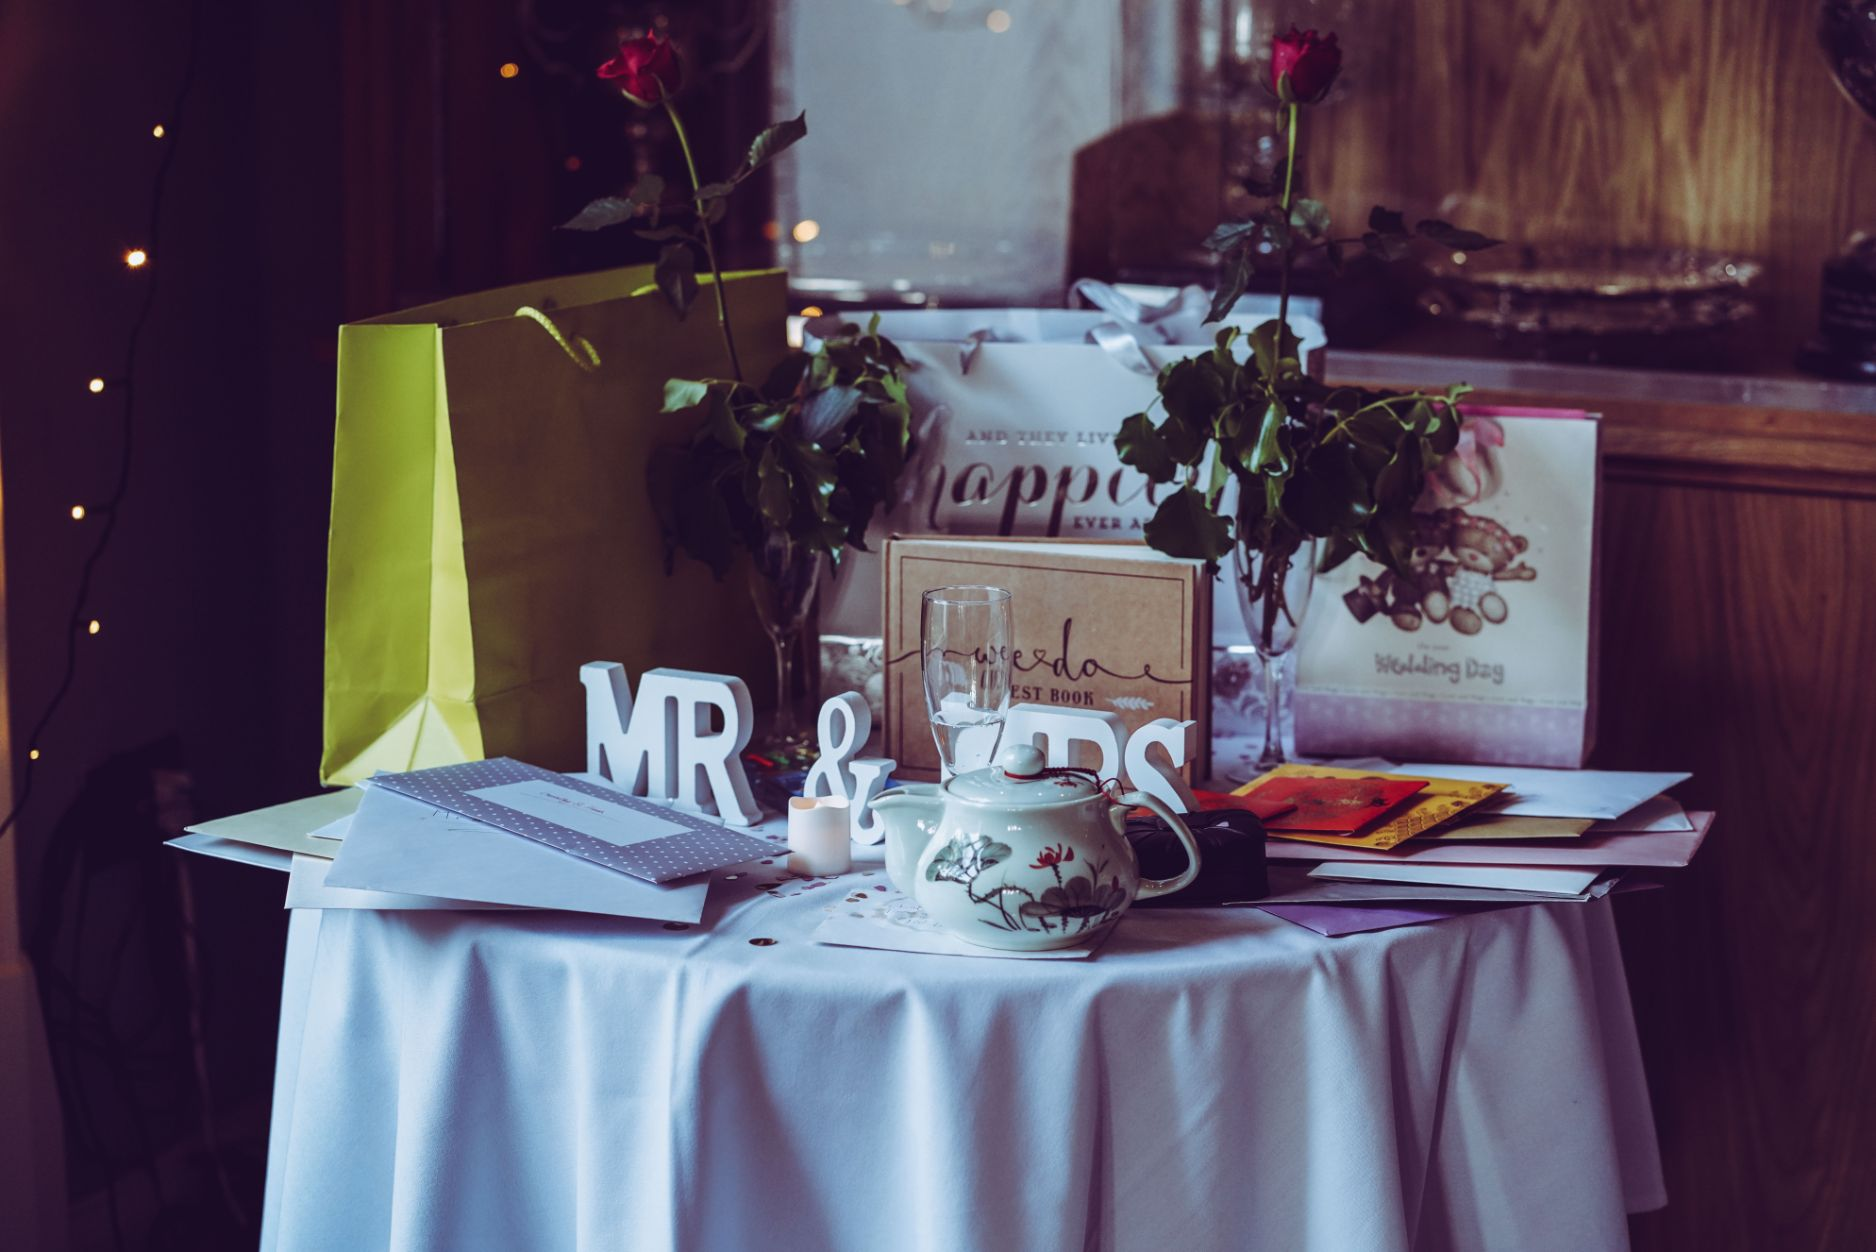 4 The Top 16 Questions You Need to Answer on Your Wedding Website FAQ